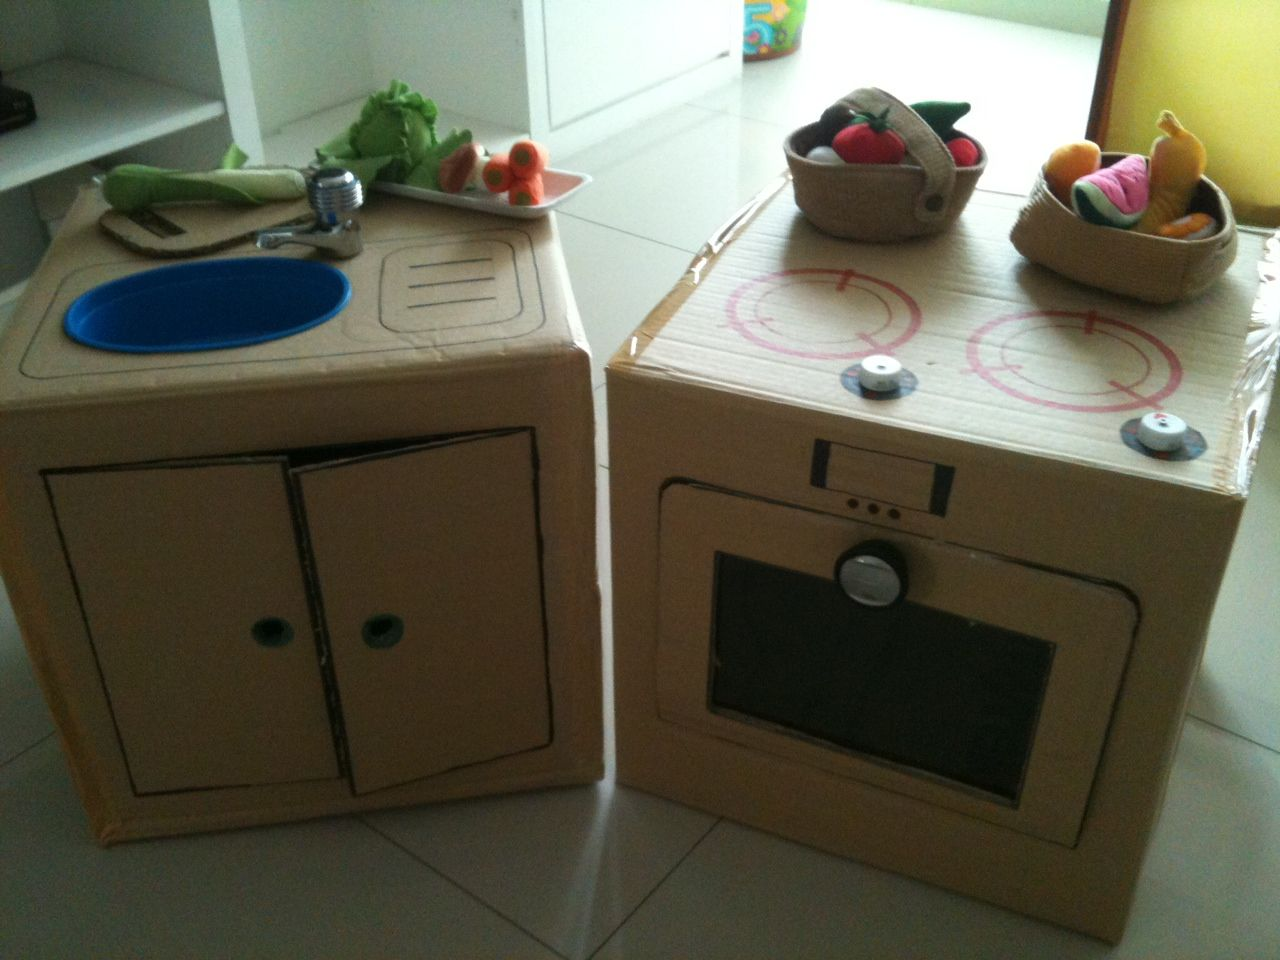 diy cardboard kitchen sink stove and oven for my